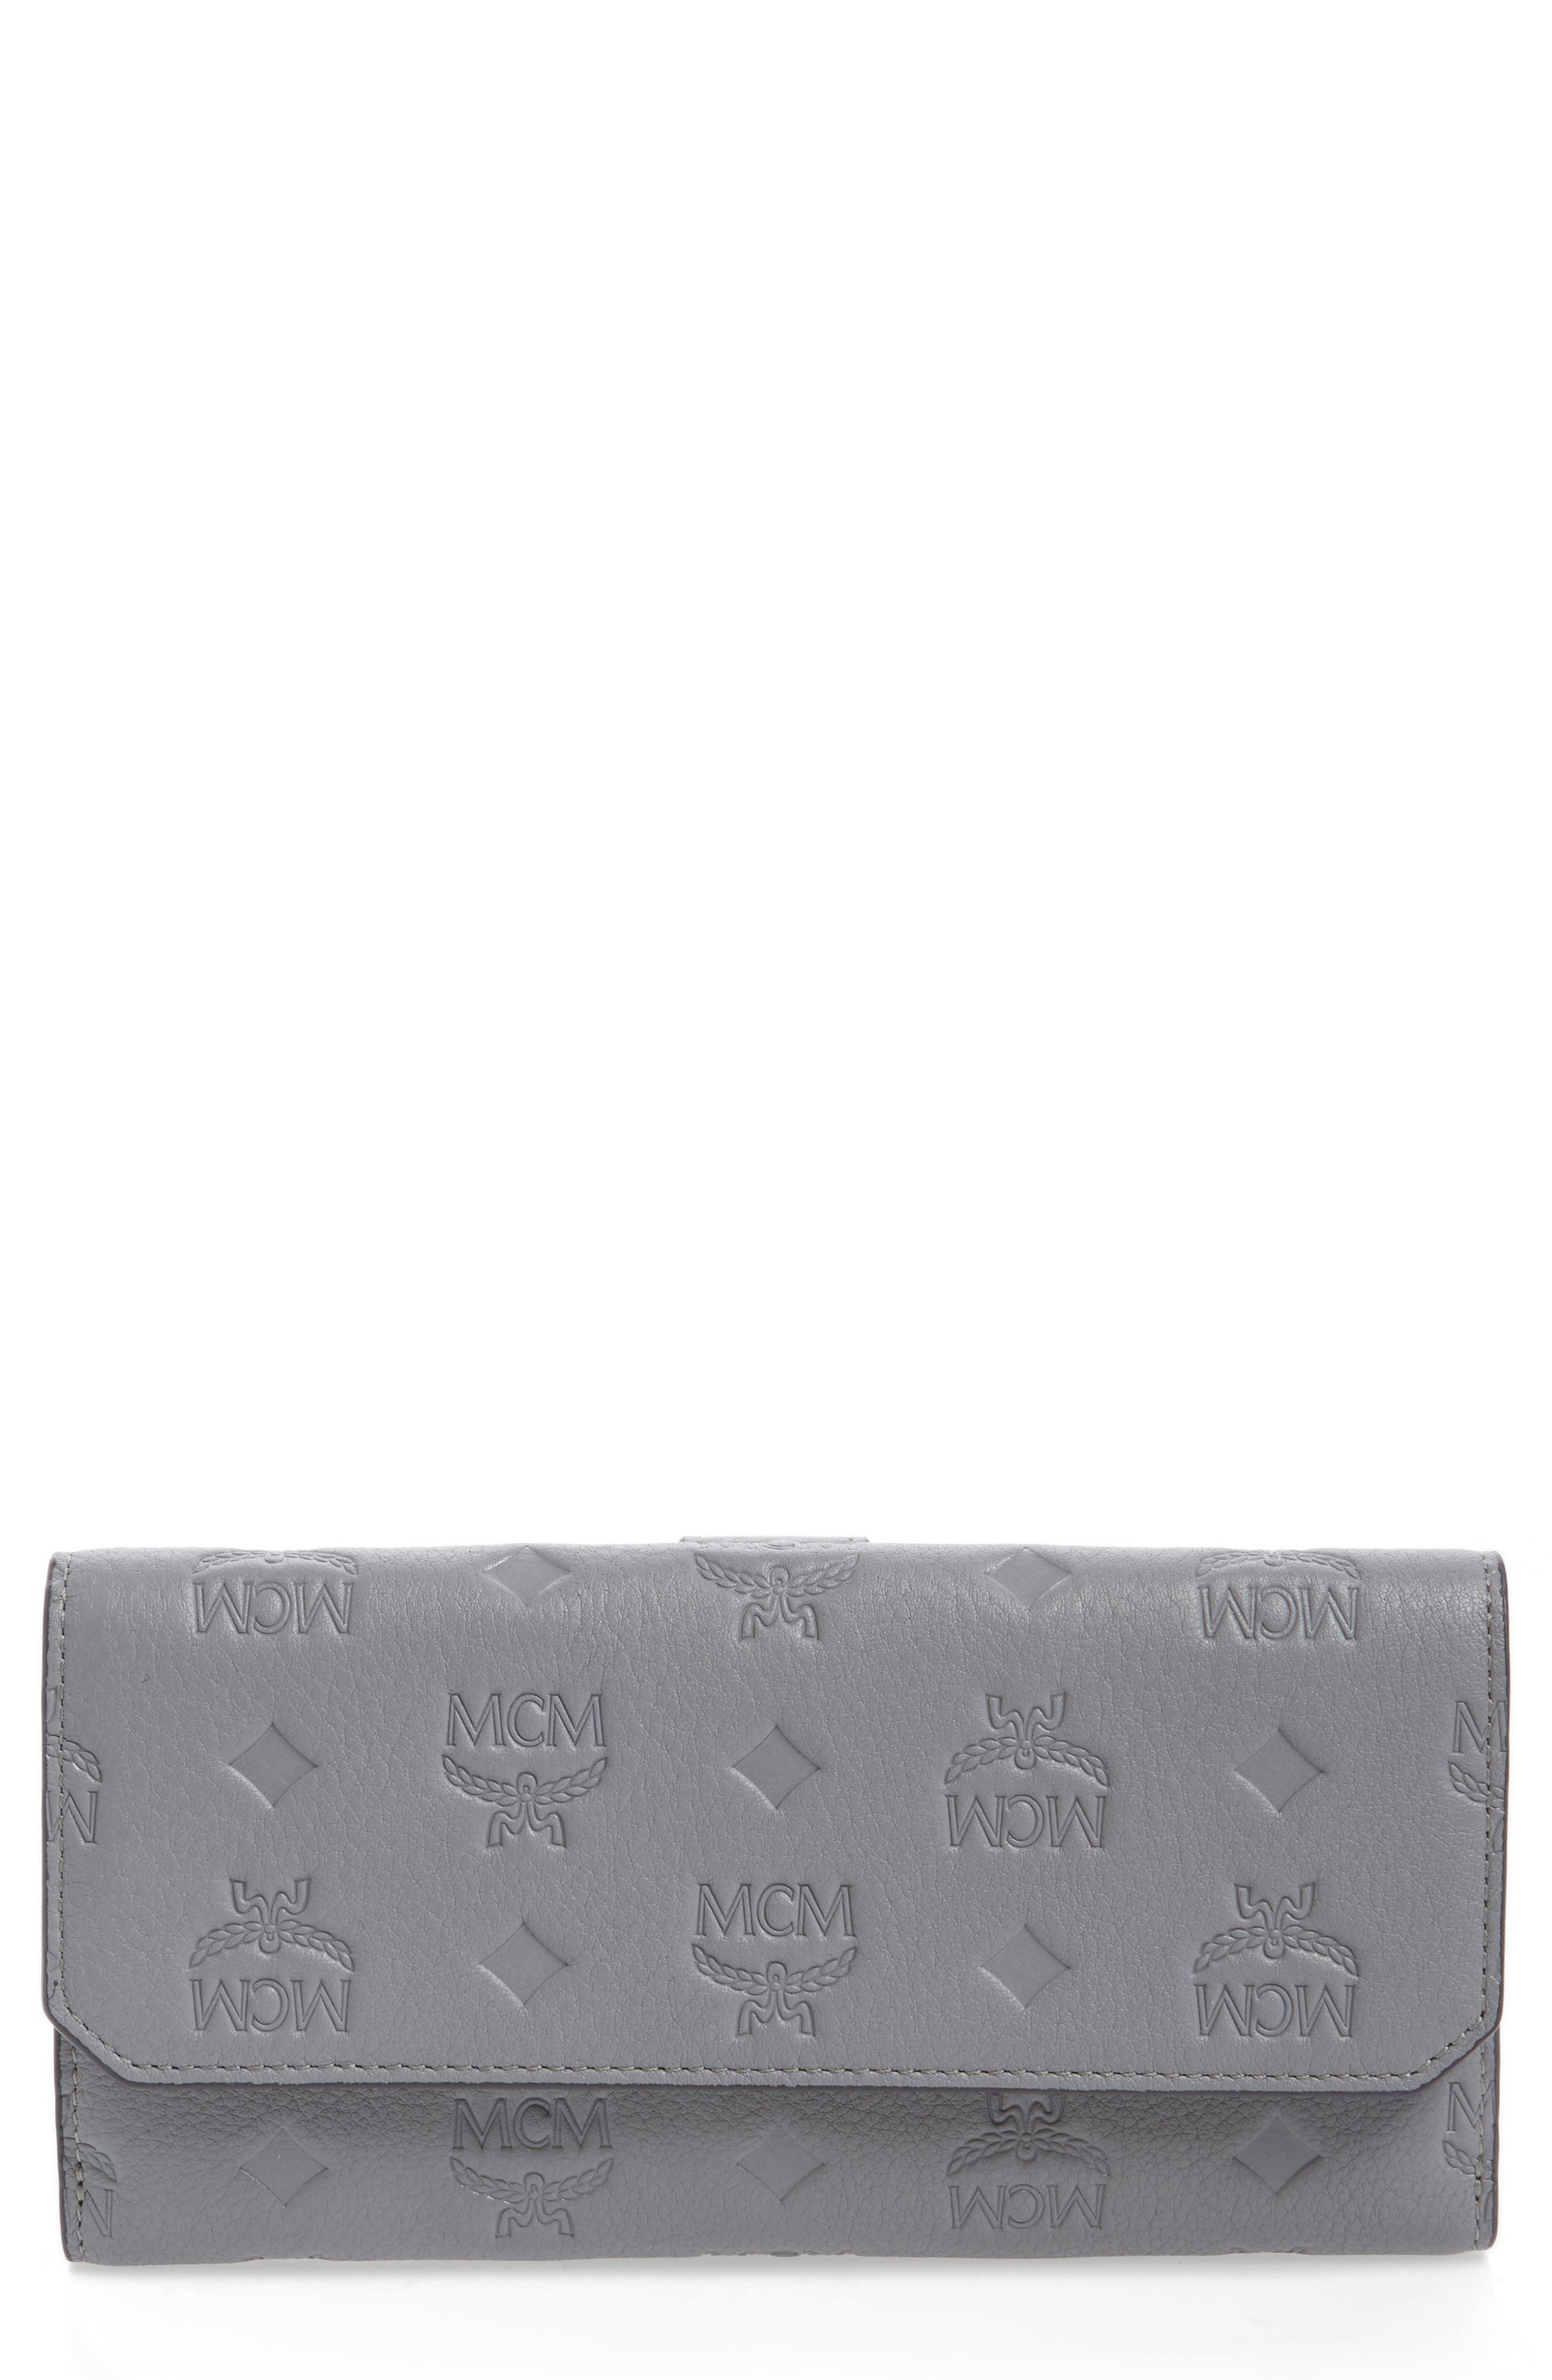 MCM Klara Leather Flap Wallet